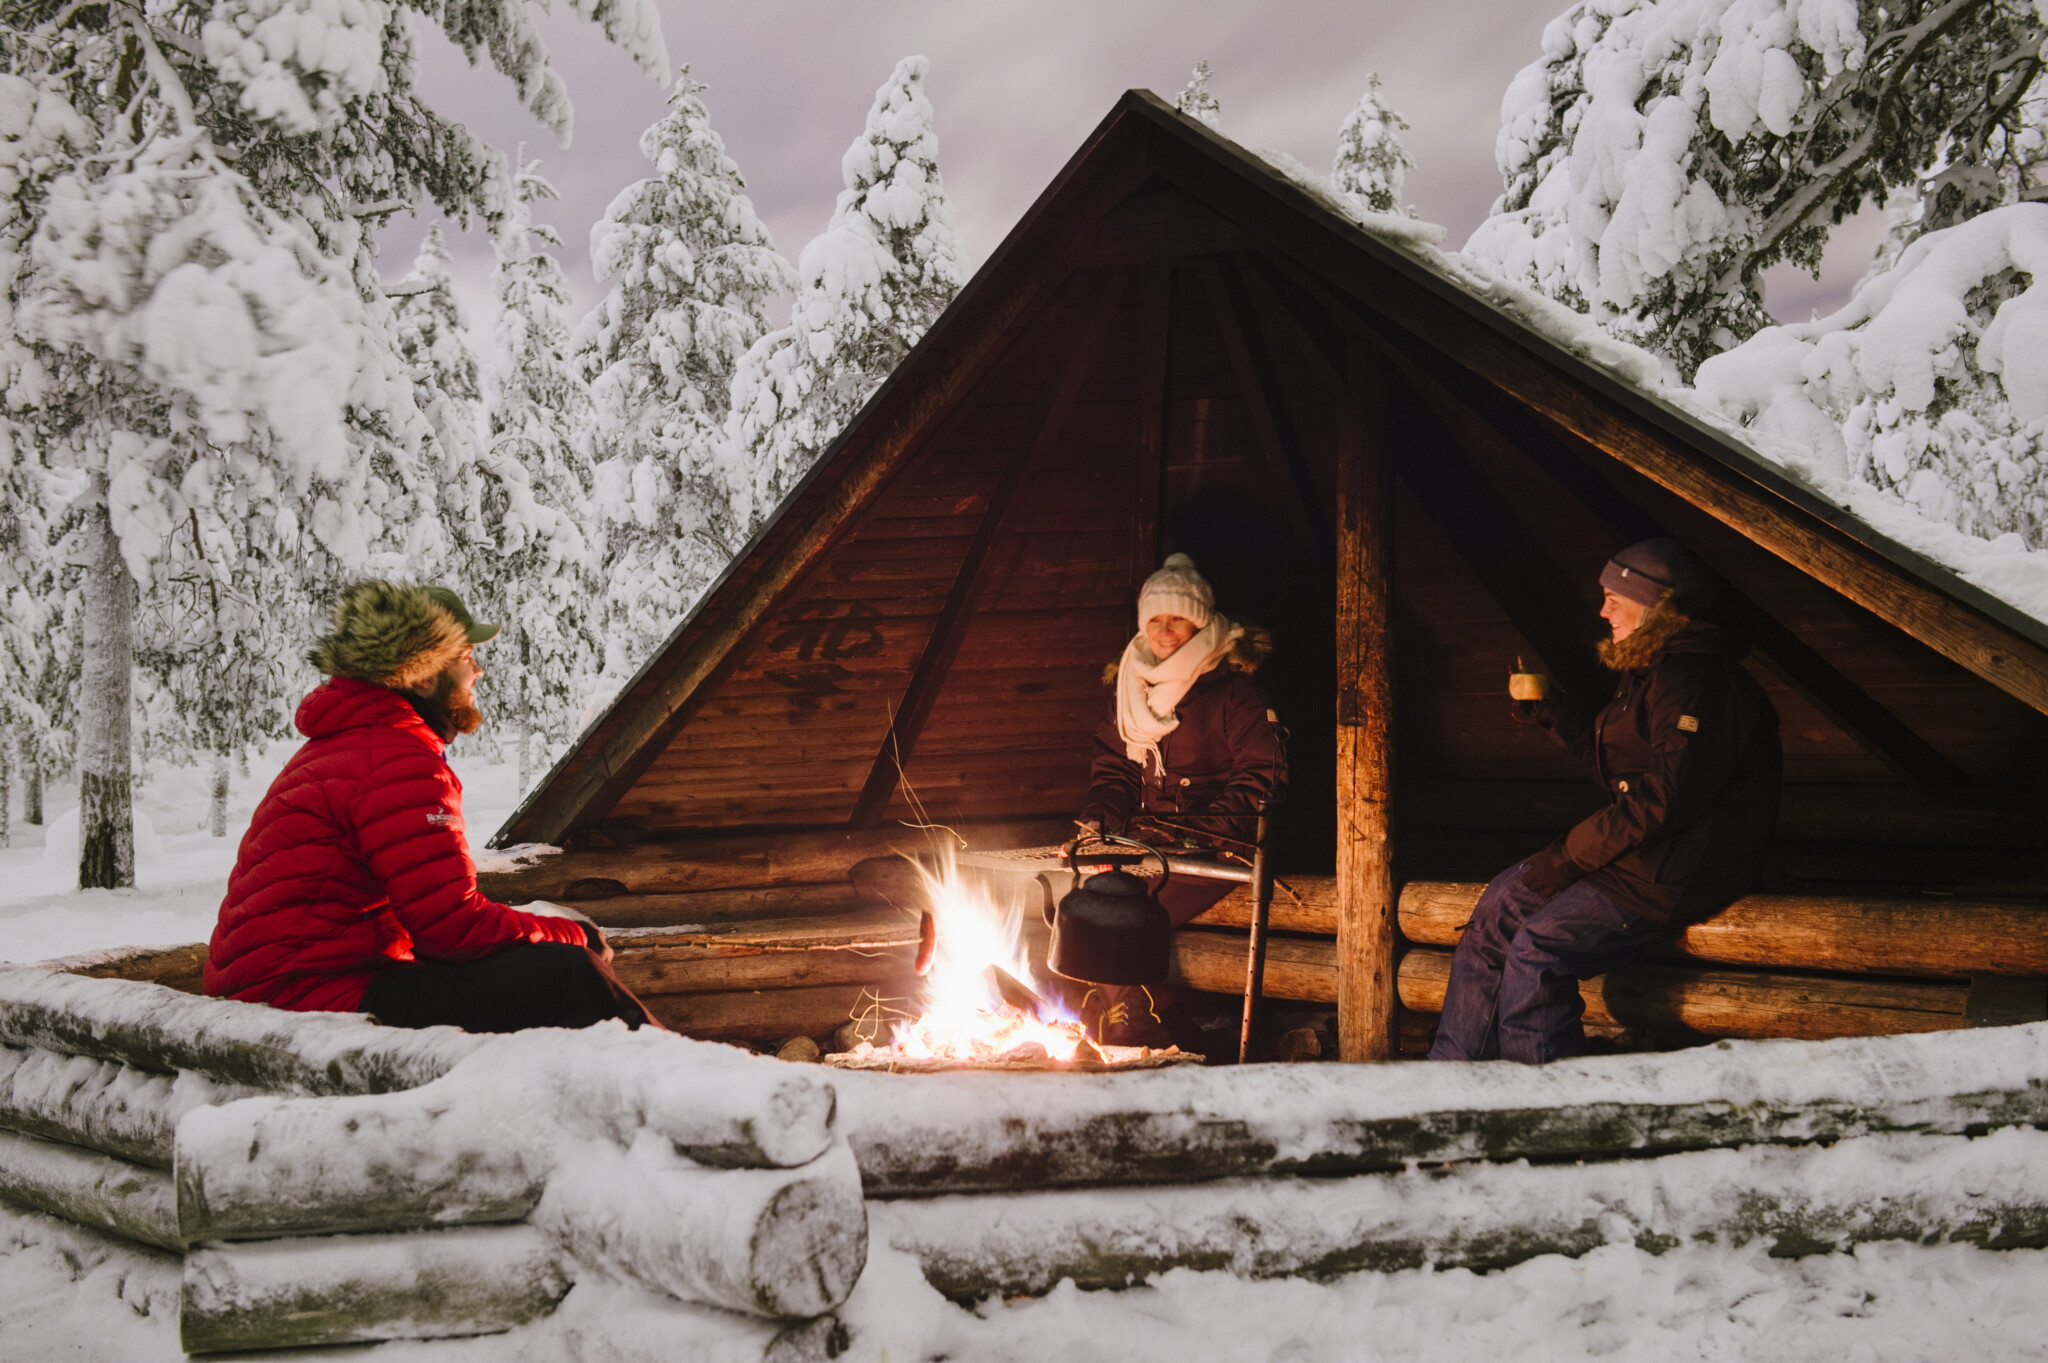 Frying Sausages by open fire in winter in Rovaniemi Lapland Finland